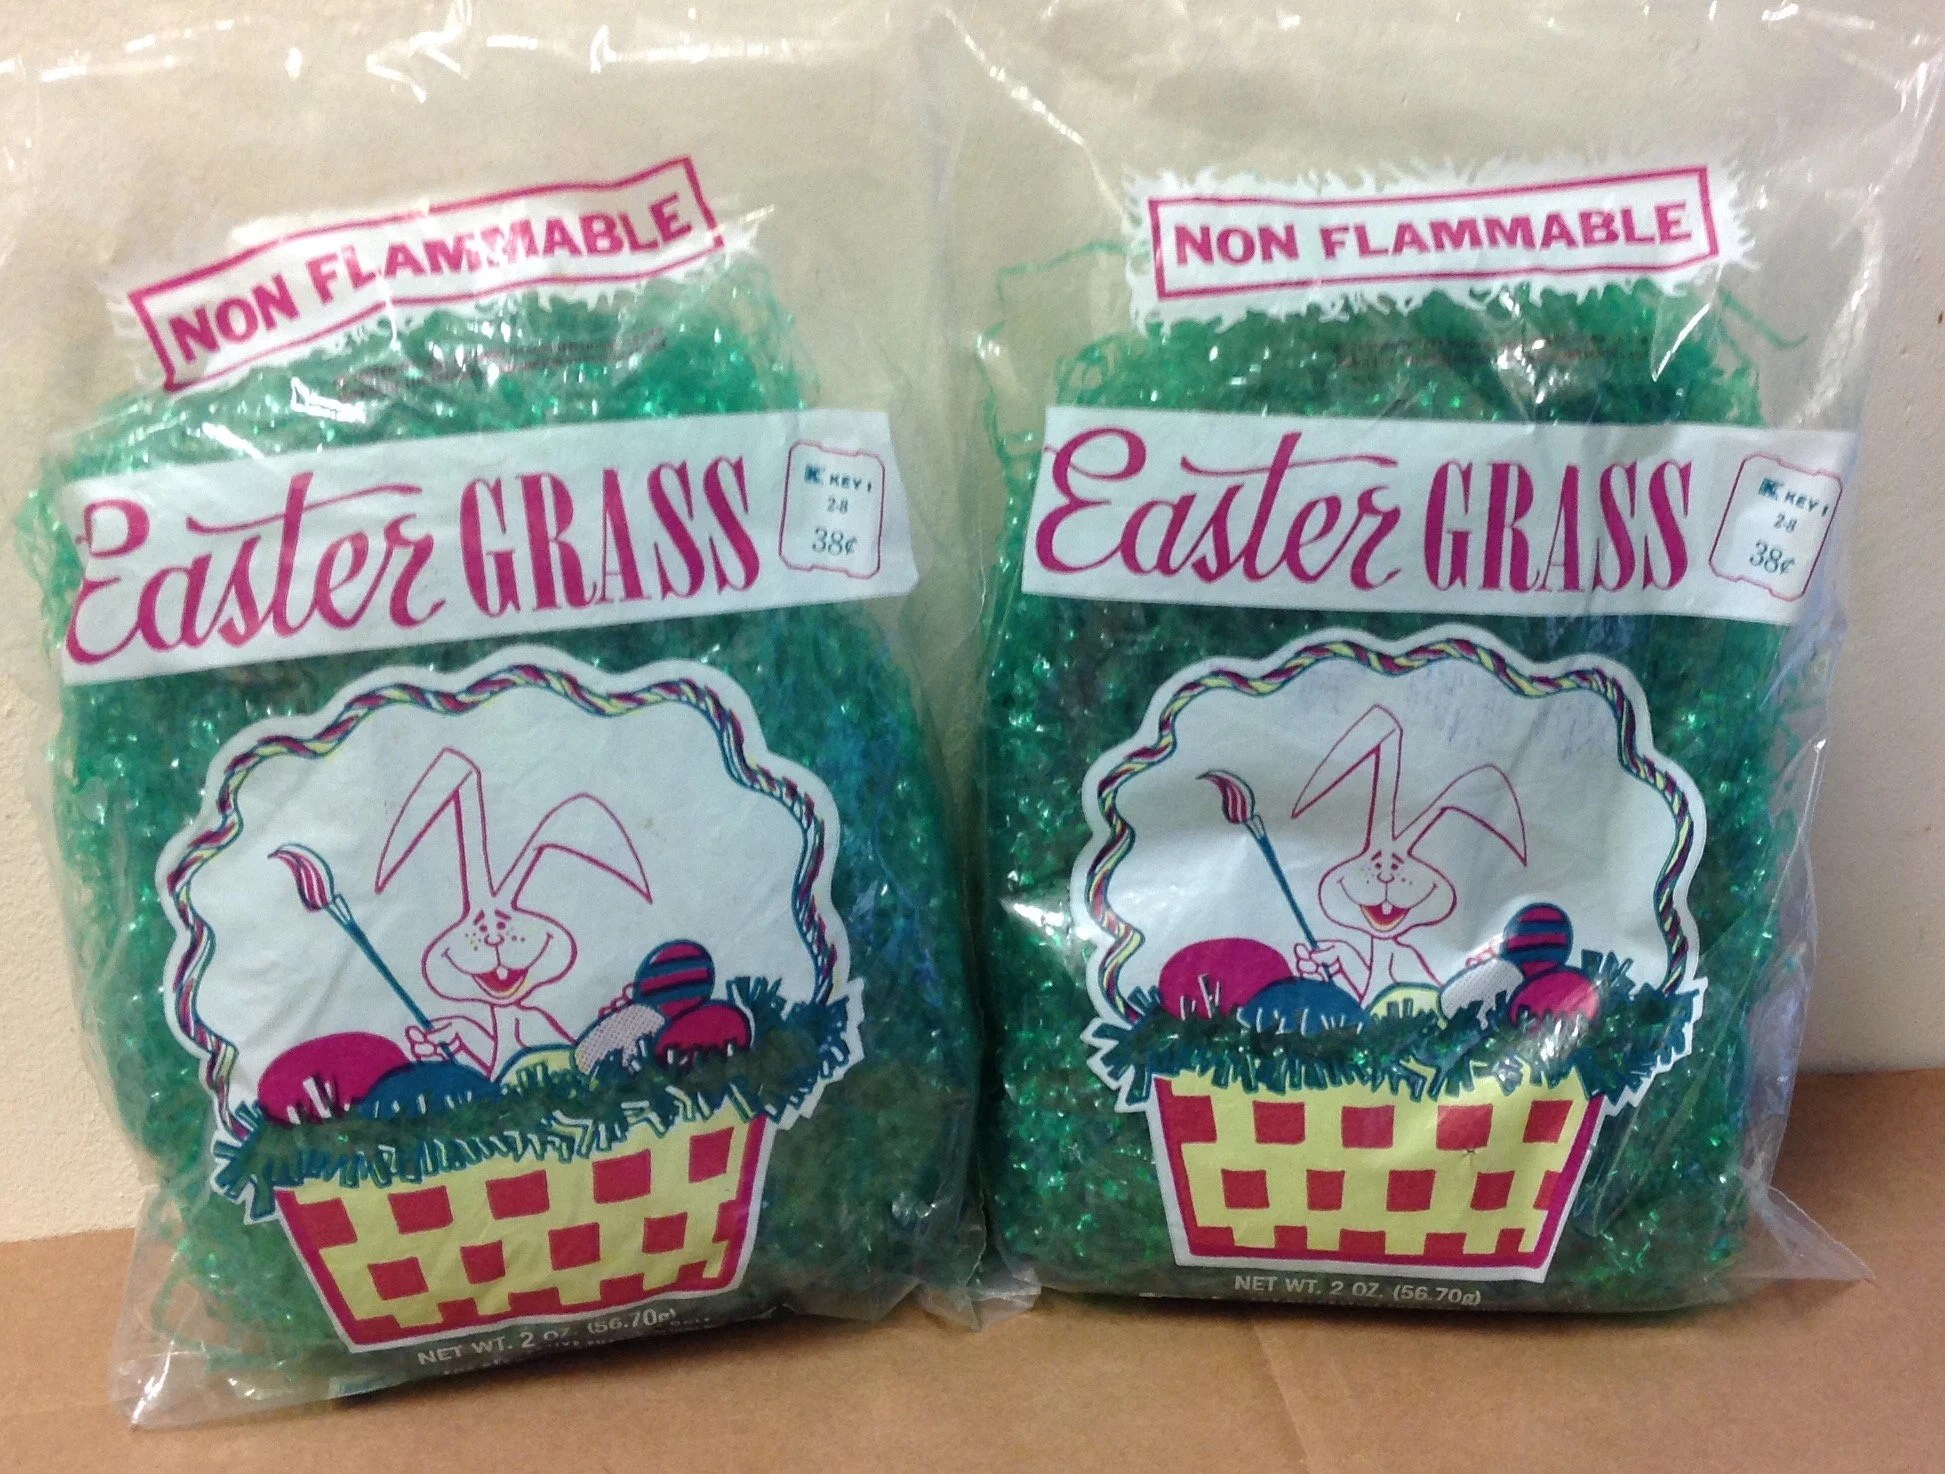 Candle Making Kit Kmart Easter Grass Vintage 1980 S Bags Sealed Green Usa Made For Kmart Basket Holiday Supplies Rabbit Eggs Graphics Retro Two 2 Oz Bag Lot Sealed